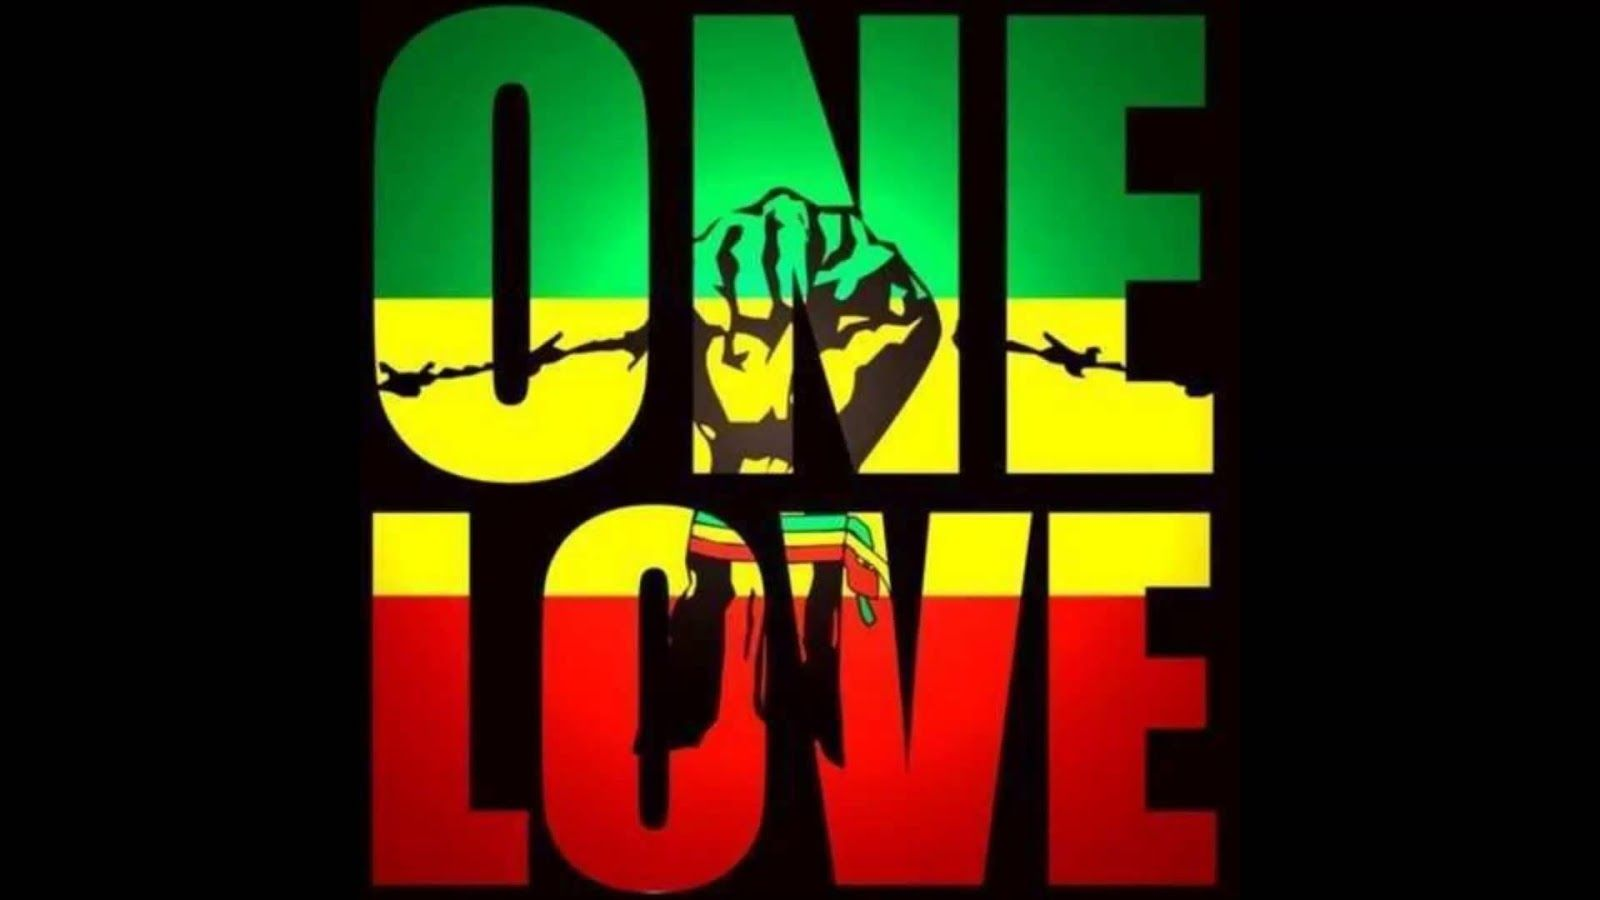 Reggae Live Wallpaper Hd Android Apps On Google Play Ponerse